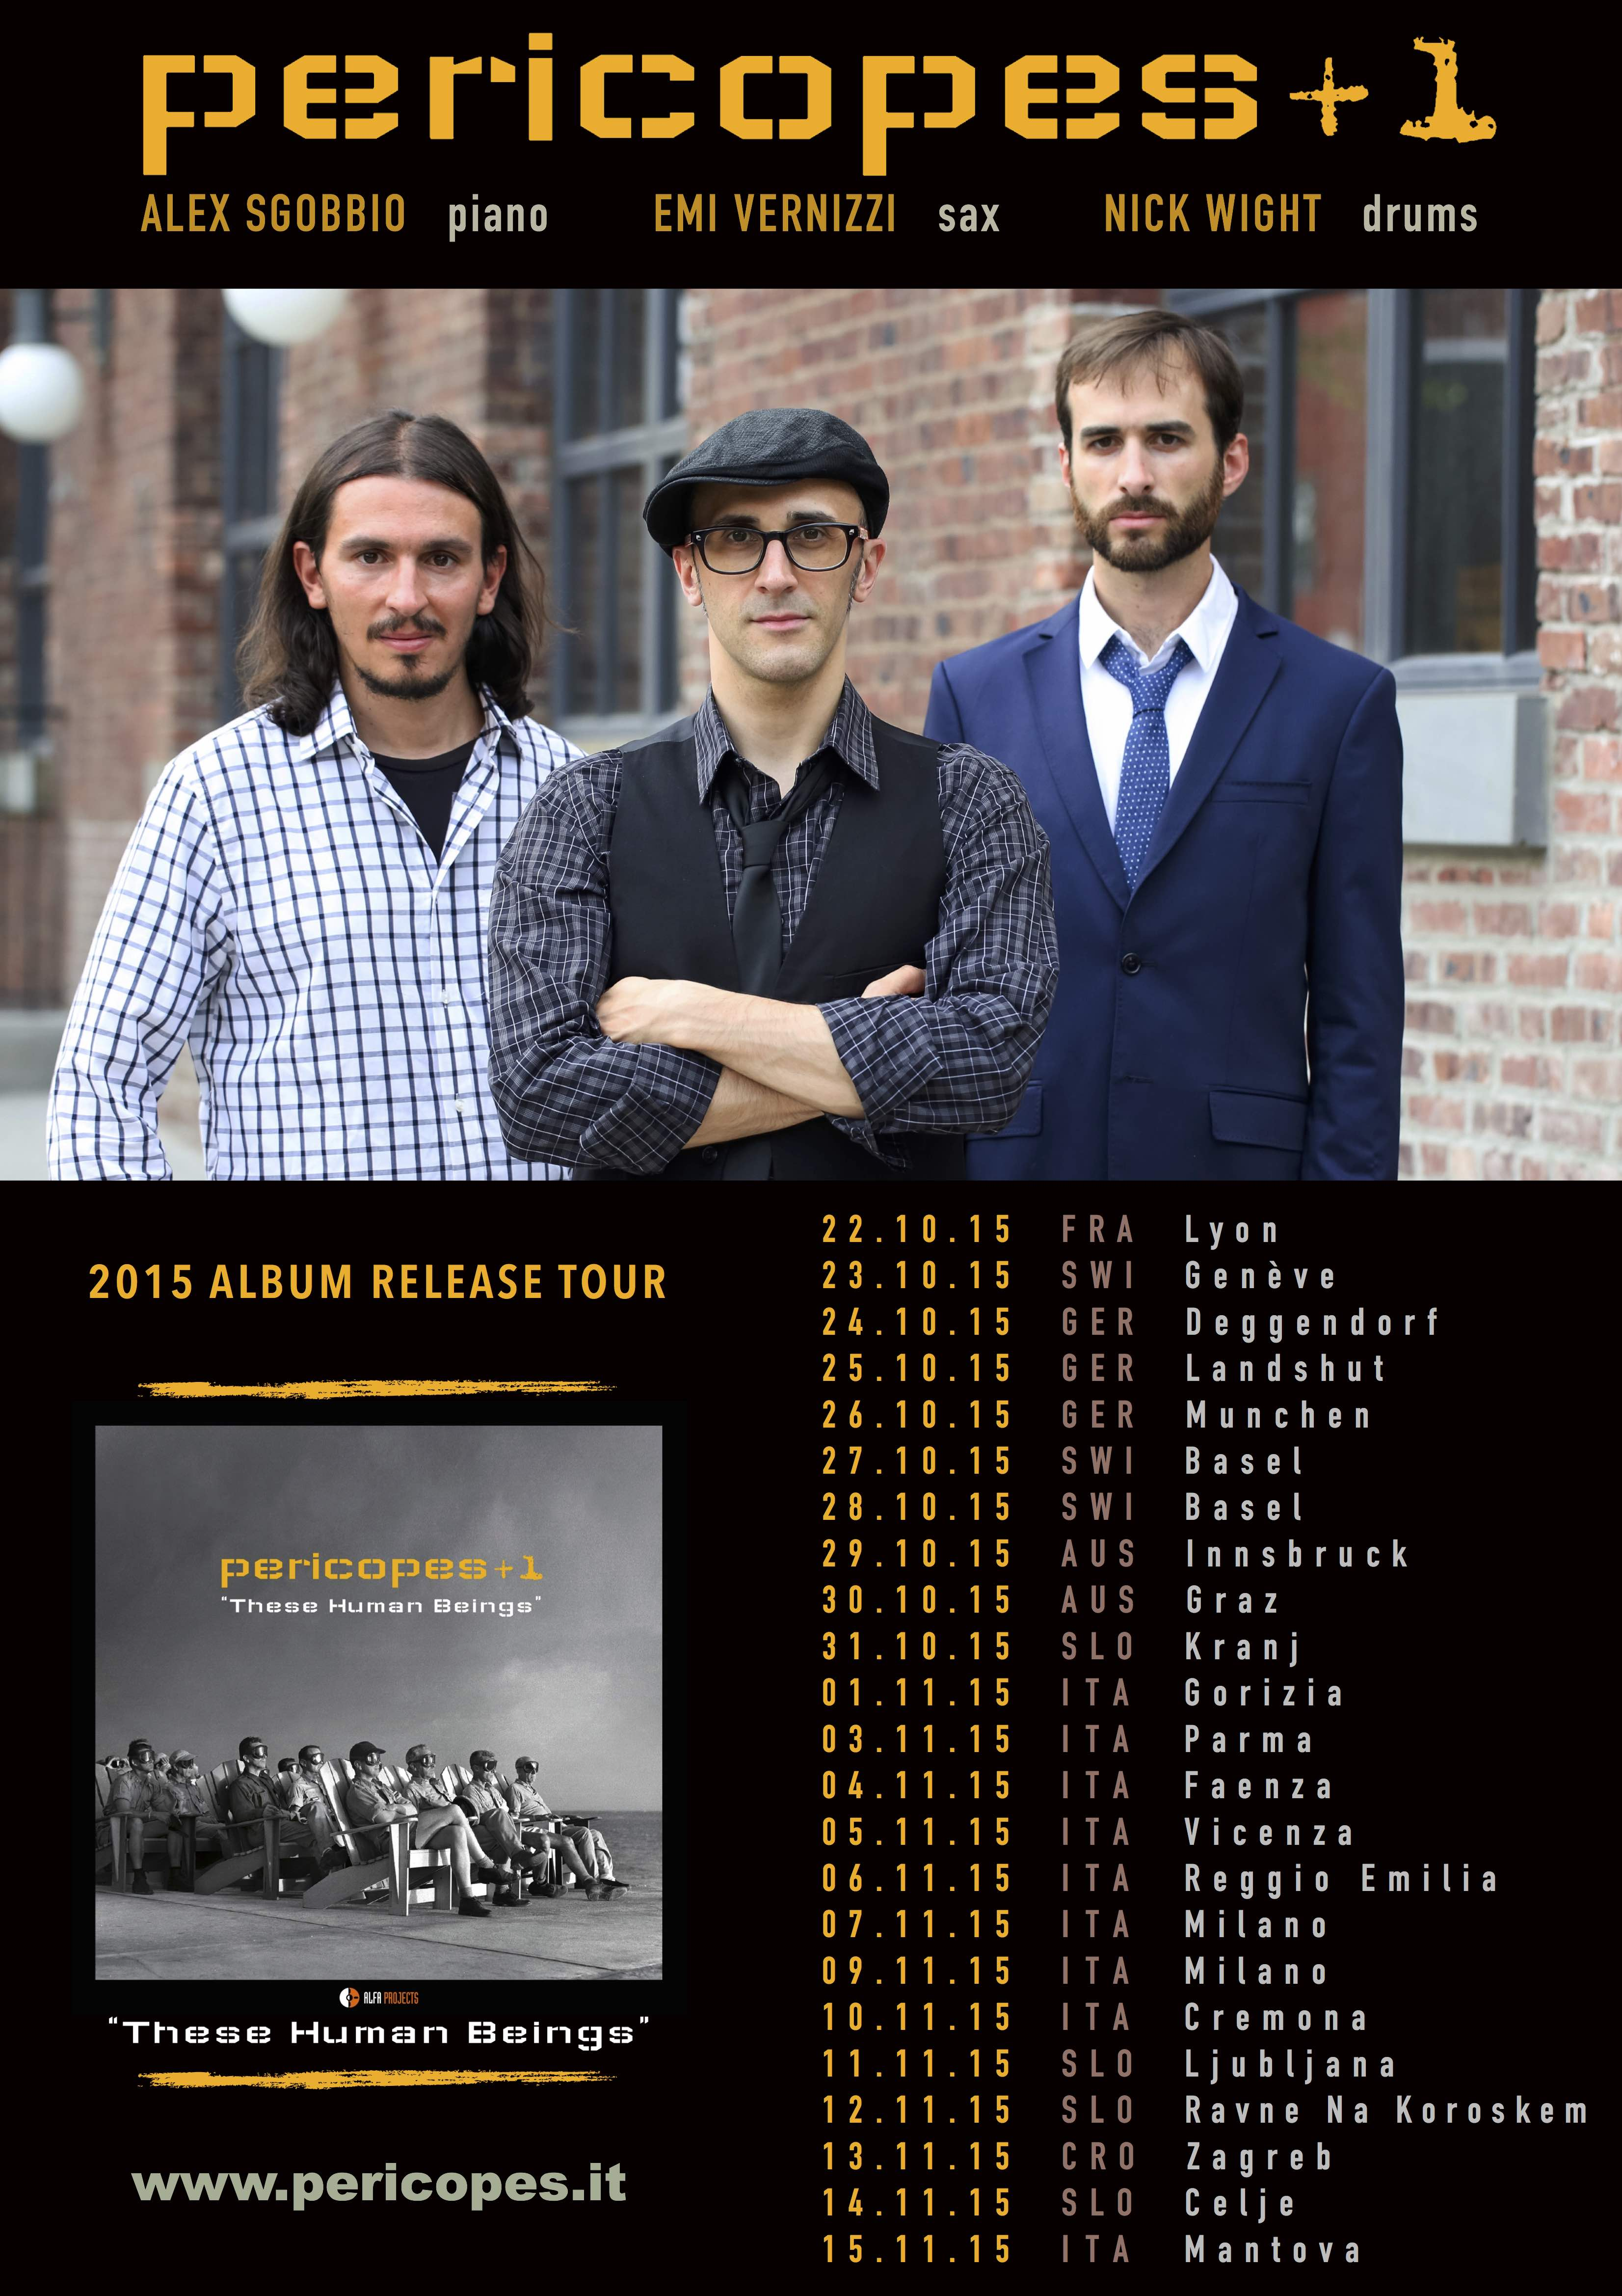 Pericopes - These Human Beings - Album Release Tour 2015 facebook